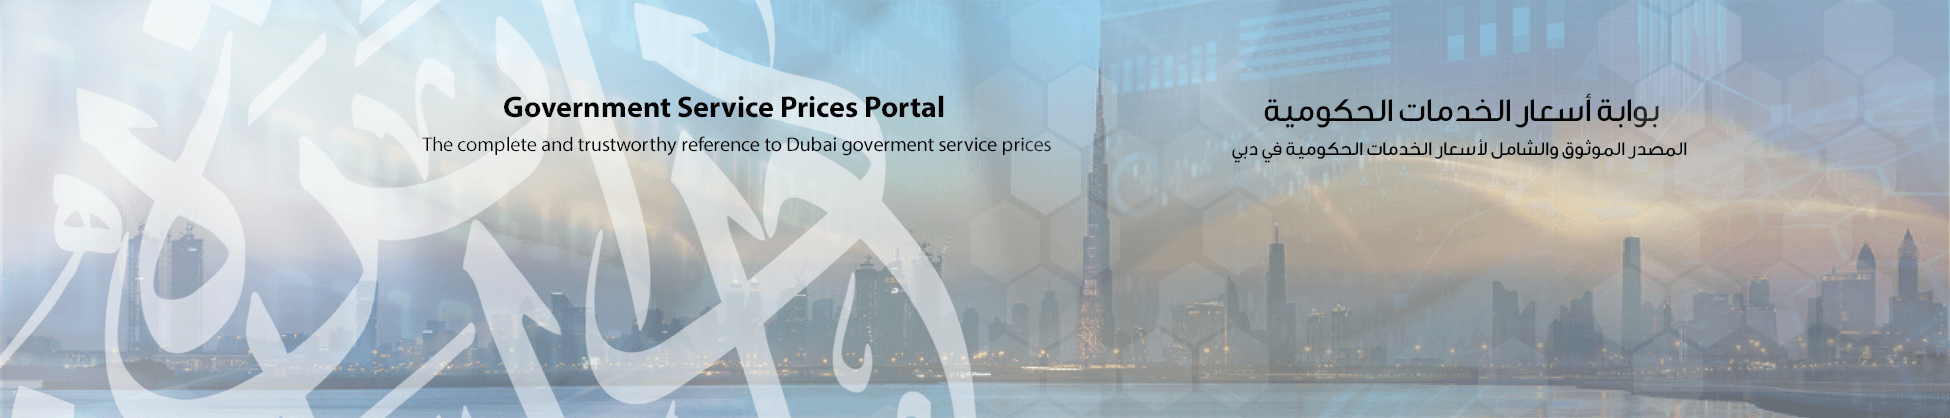 Government Service Prices